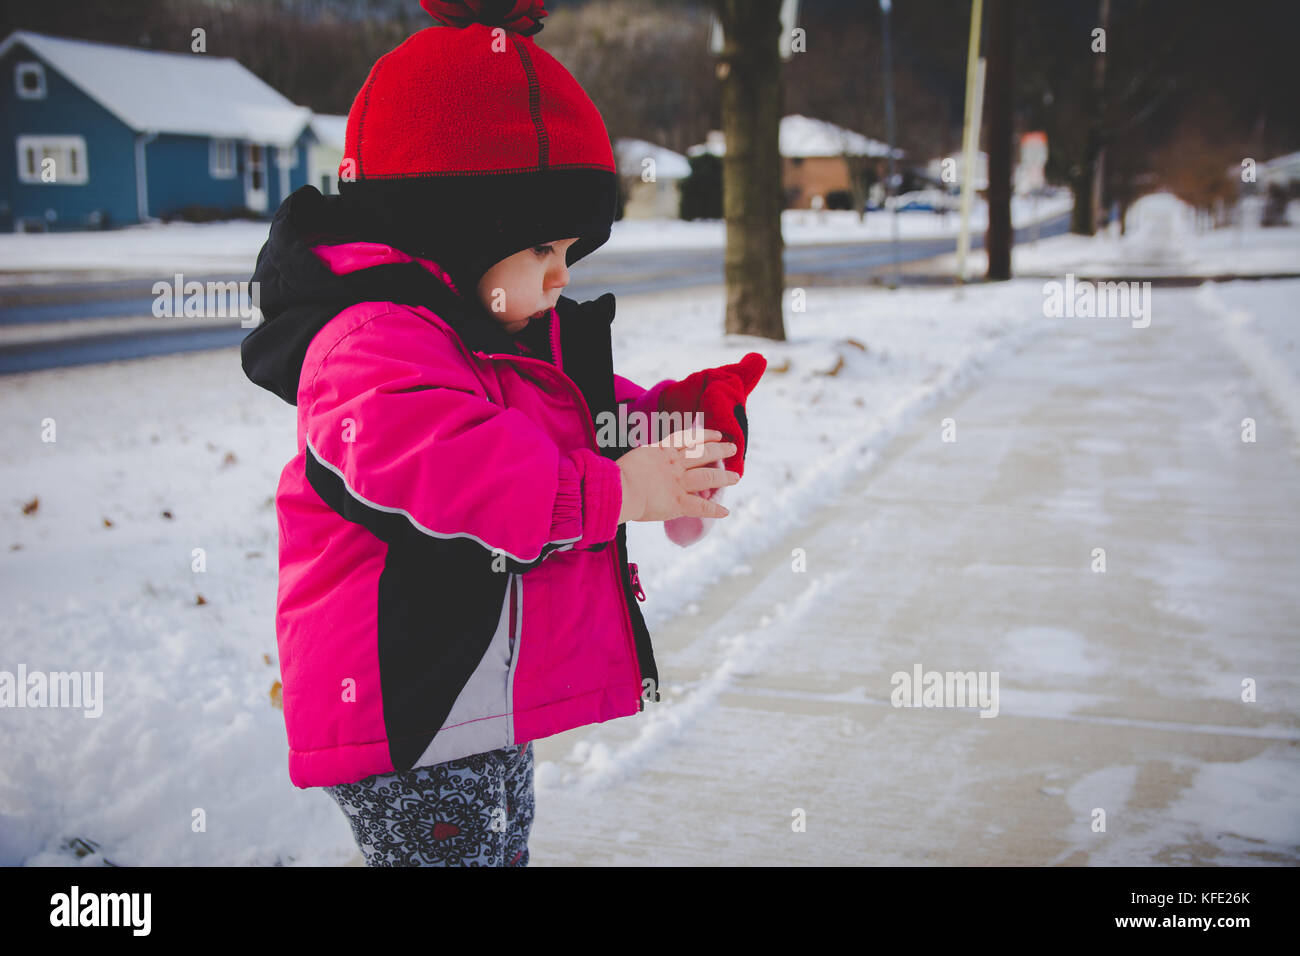 infant putting a mitten on during winter - Stock Image